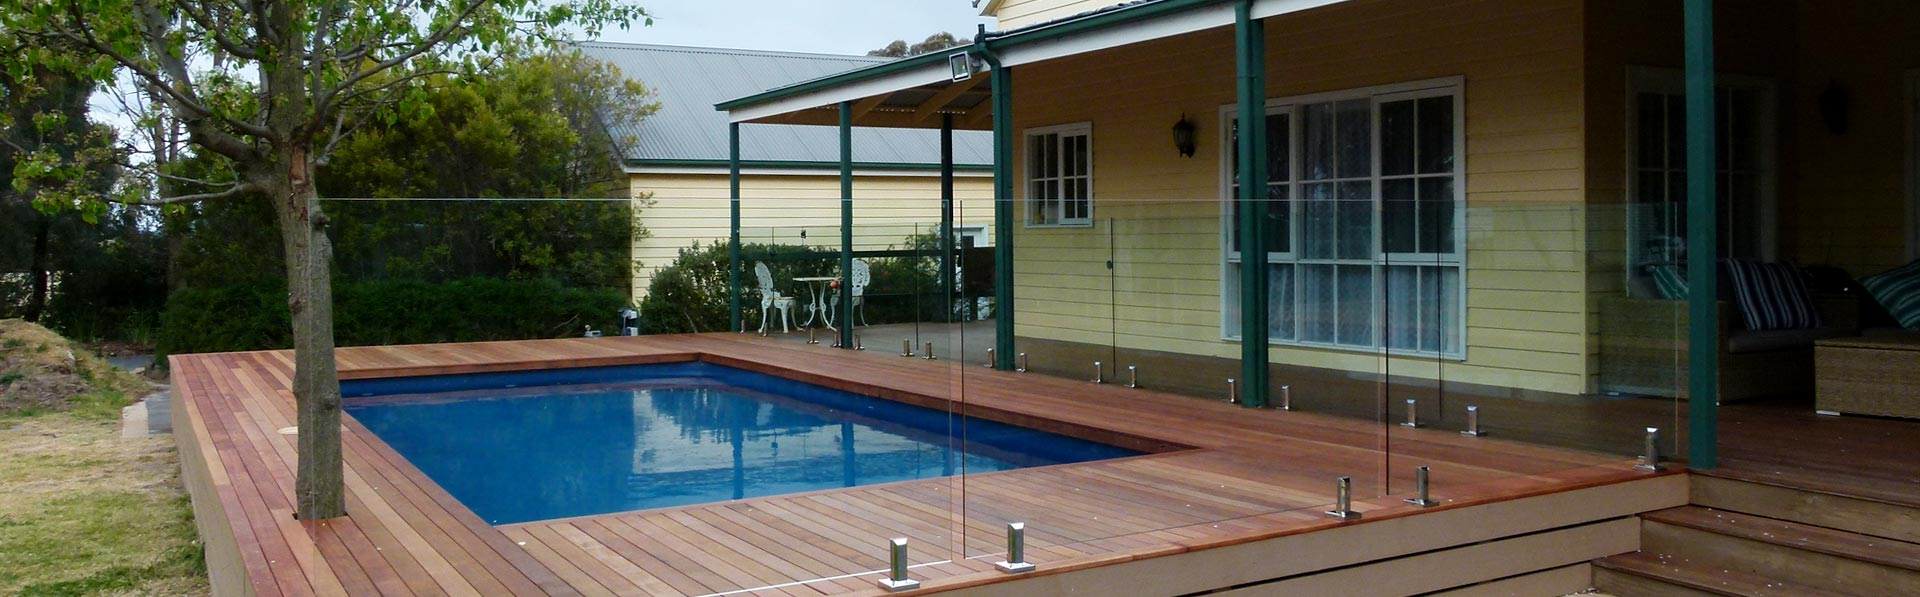 Square Above Ground Pool you will love your new sterns pool | sterns above ground pools